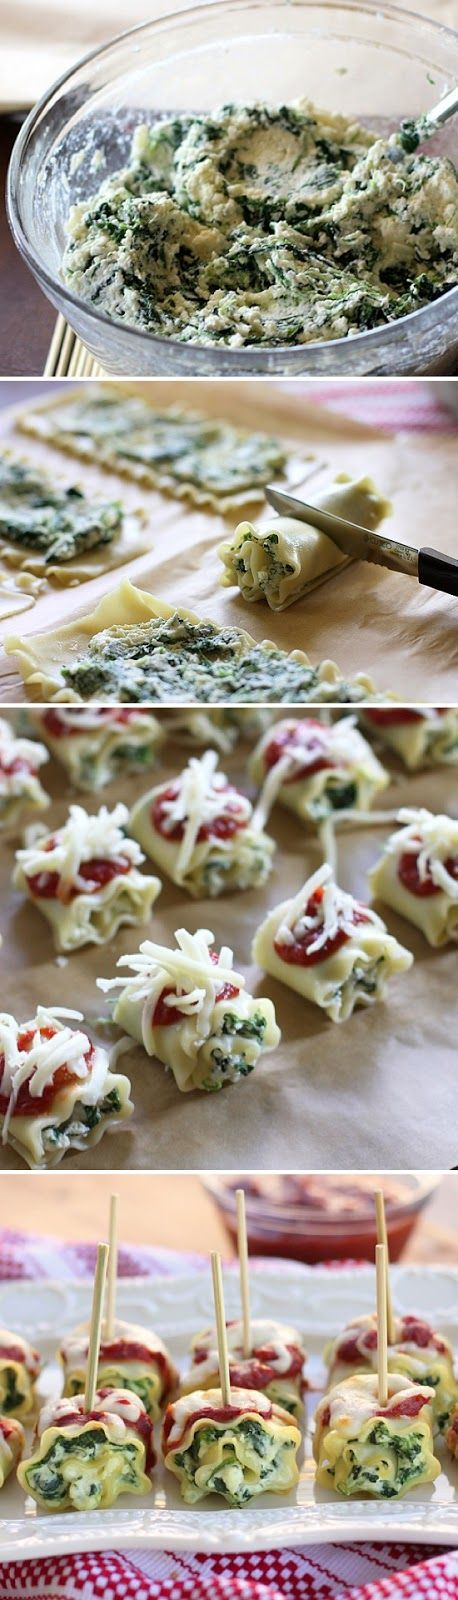 Mini Spinach Lasagna Roll-Ups, adorbs!! #holidays #appetizer #tailgating